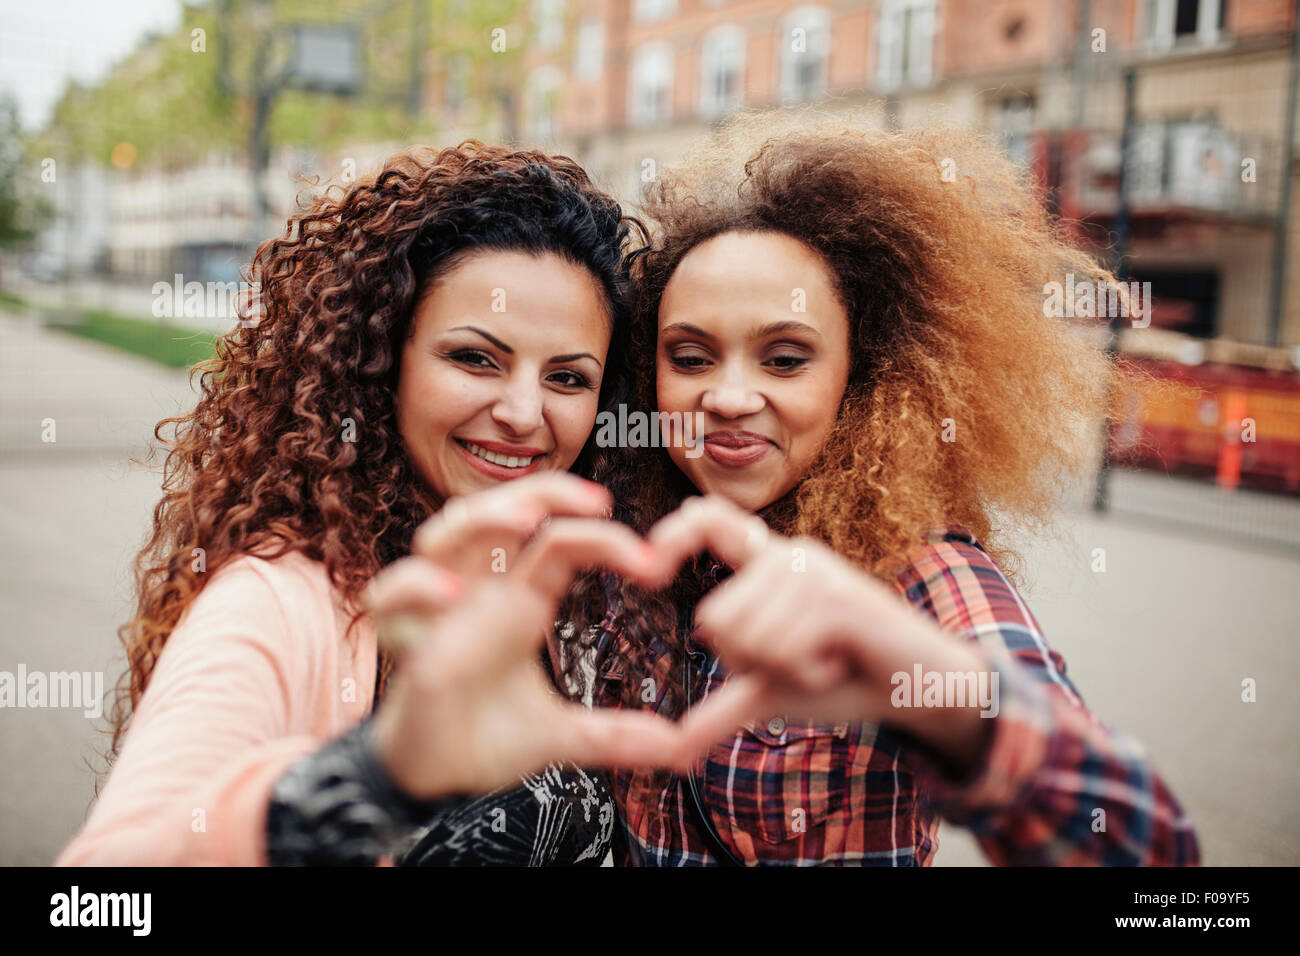 Beautiful young women making heart shape with fingers. Two women standing together outdoors on city street. - Stock Image